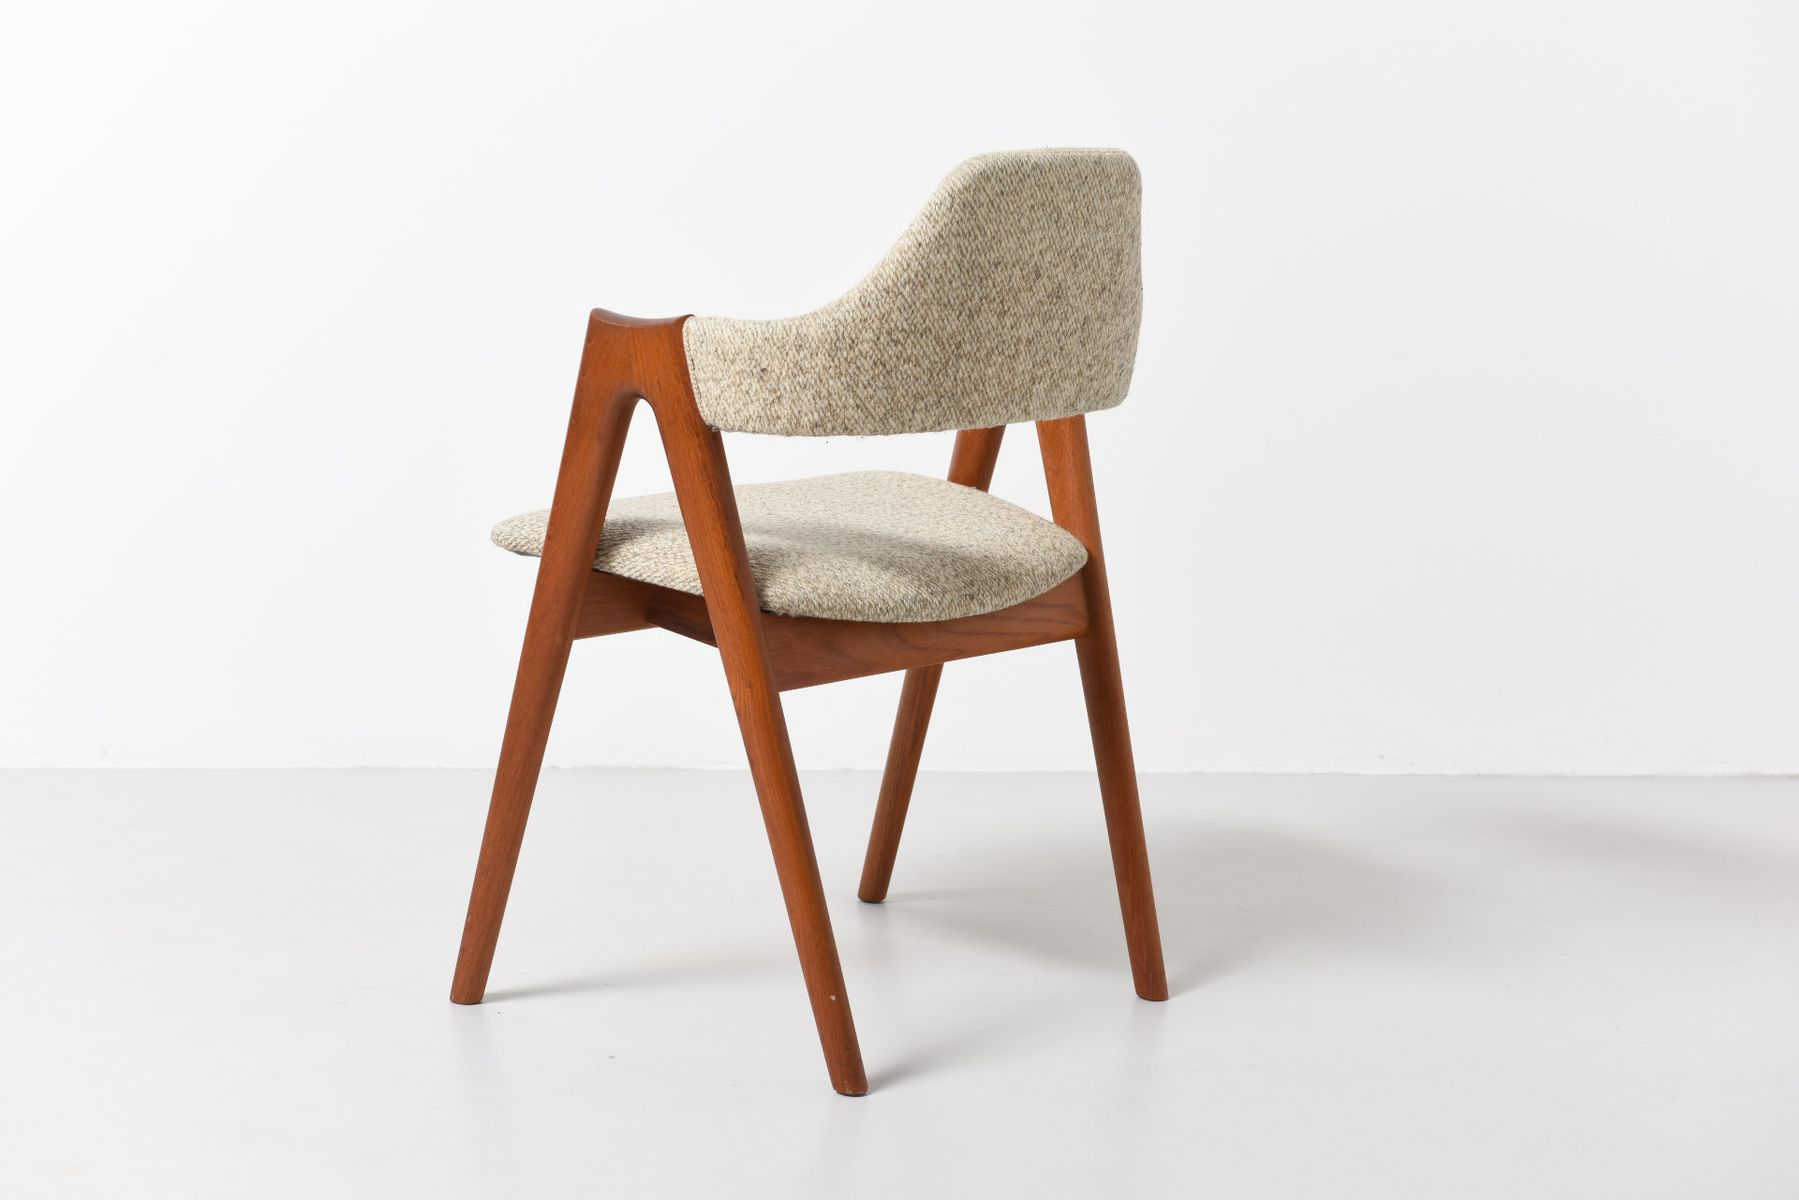 Compass dining chairs by kai kristiansen for sva m bler 1958 set of 4 for sale at pamono - Kai kristiansen chair ...